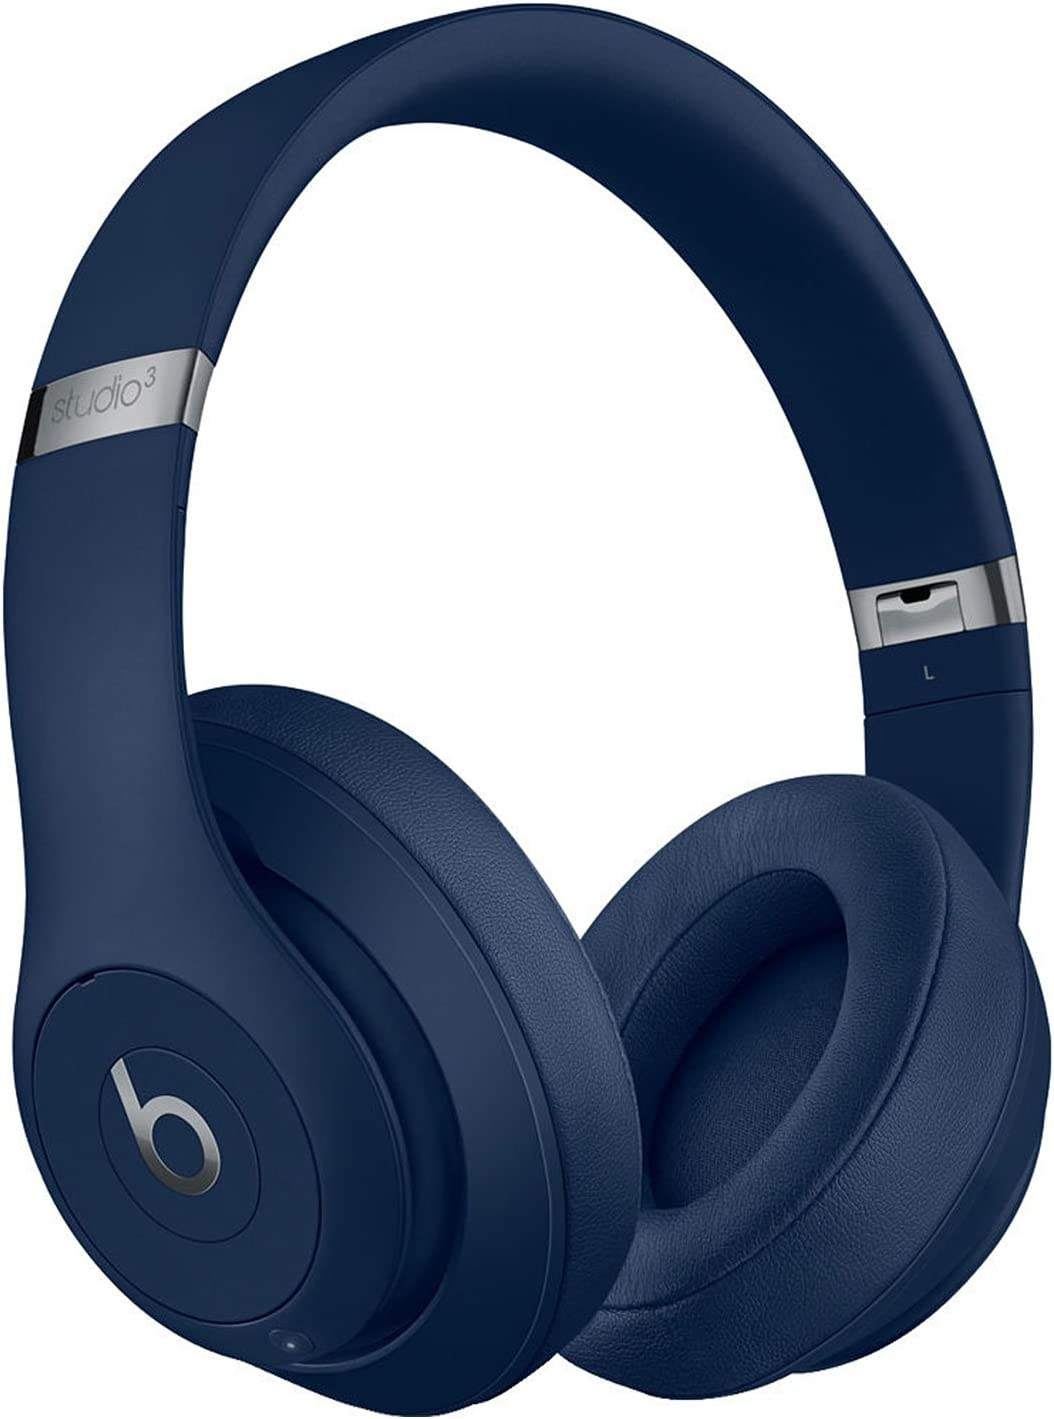 Beats Studio 2.0 Wireless Bluetooth Over Ear Headphones Blue